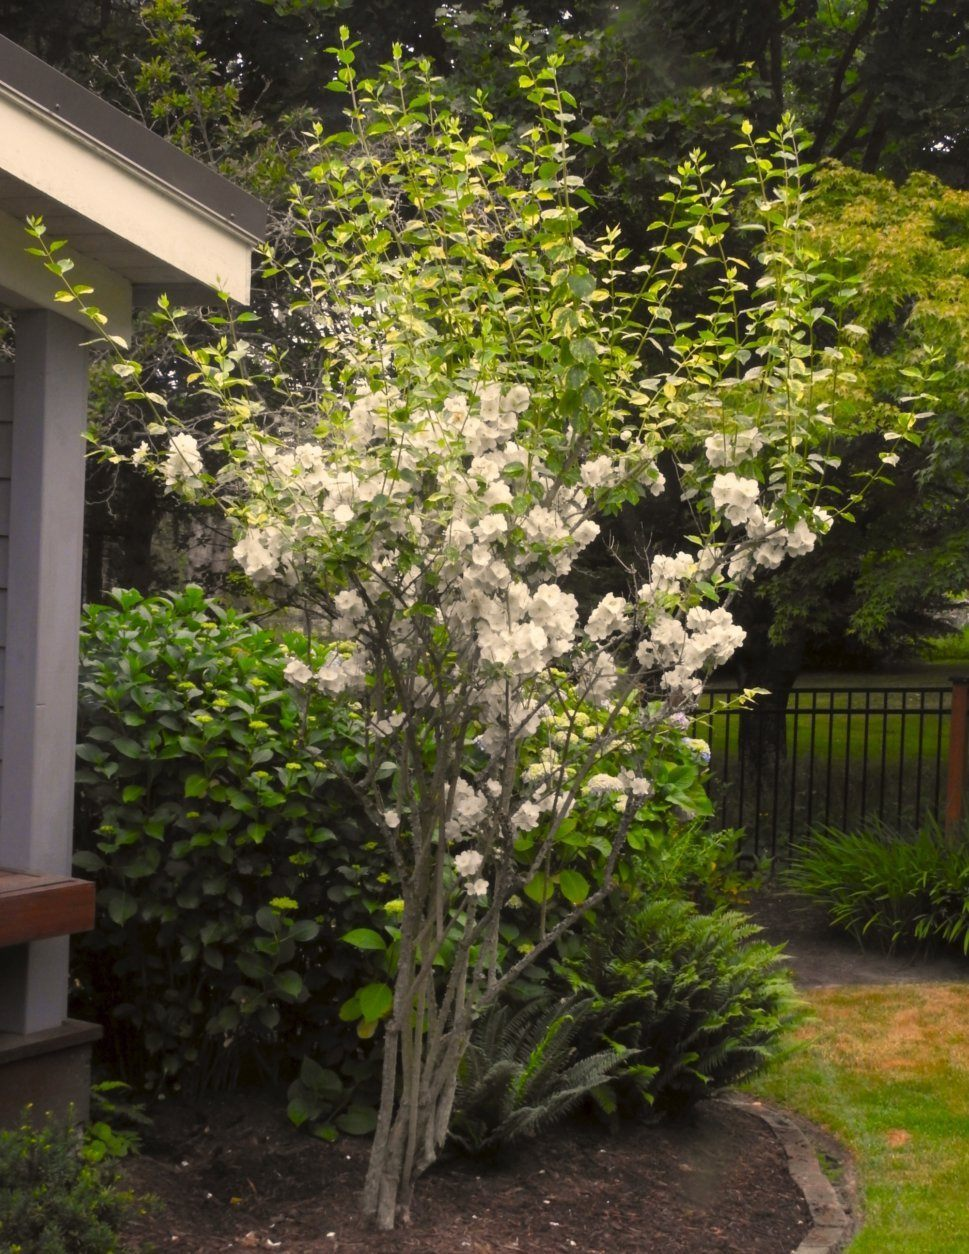 This June 23, 2019 photo taken in a yard near Langley, Wash., shows the results of an improperly timed pruning job. Deciduous trees and shrubs should be pruned in the spring, before they leaf. It would have reduced the height of this shrub and eliminated the new growth that's without any blooms. (Dean Fosdick via AP)